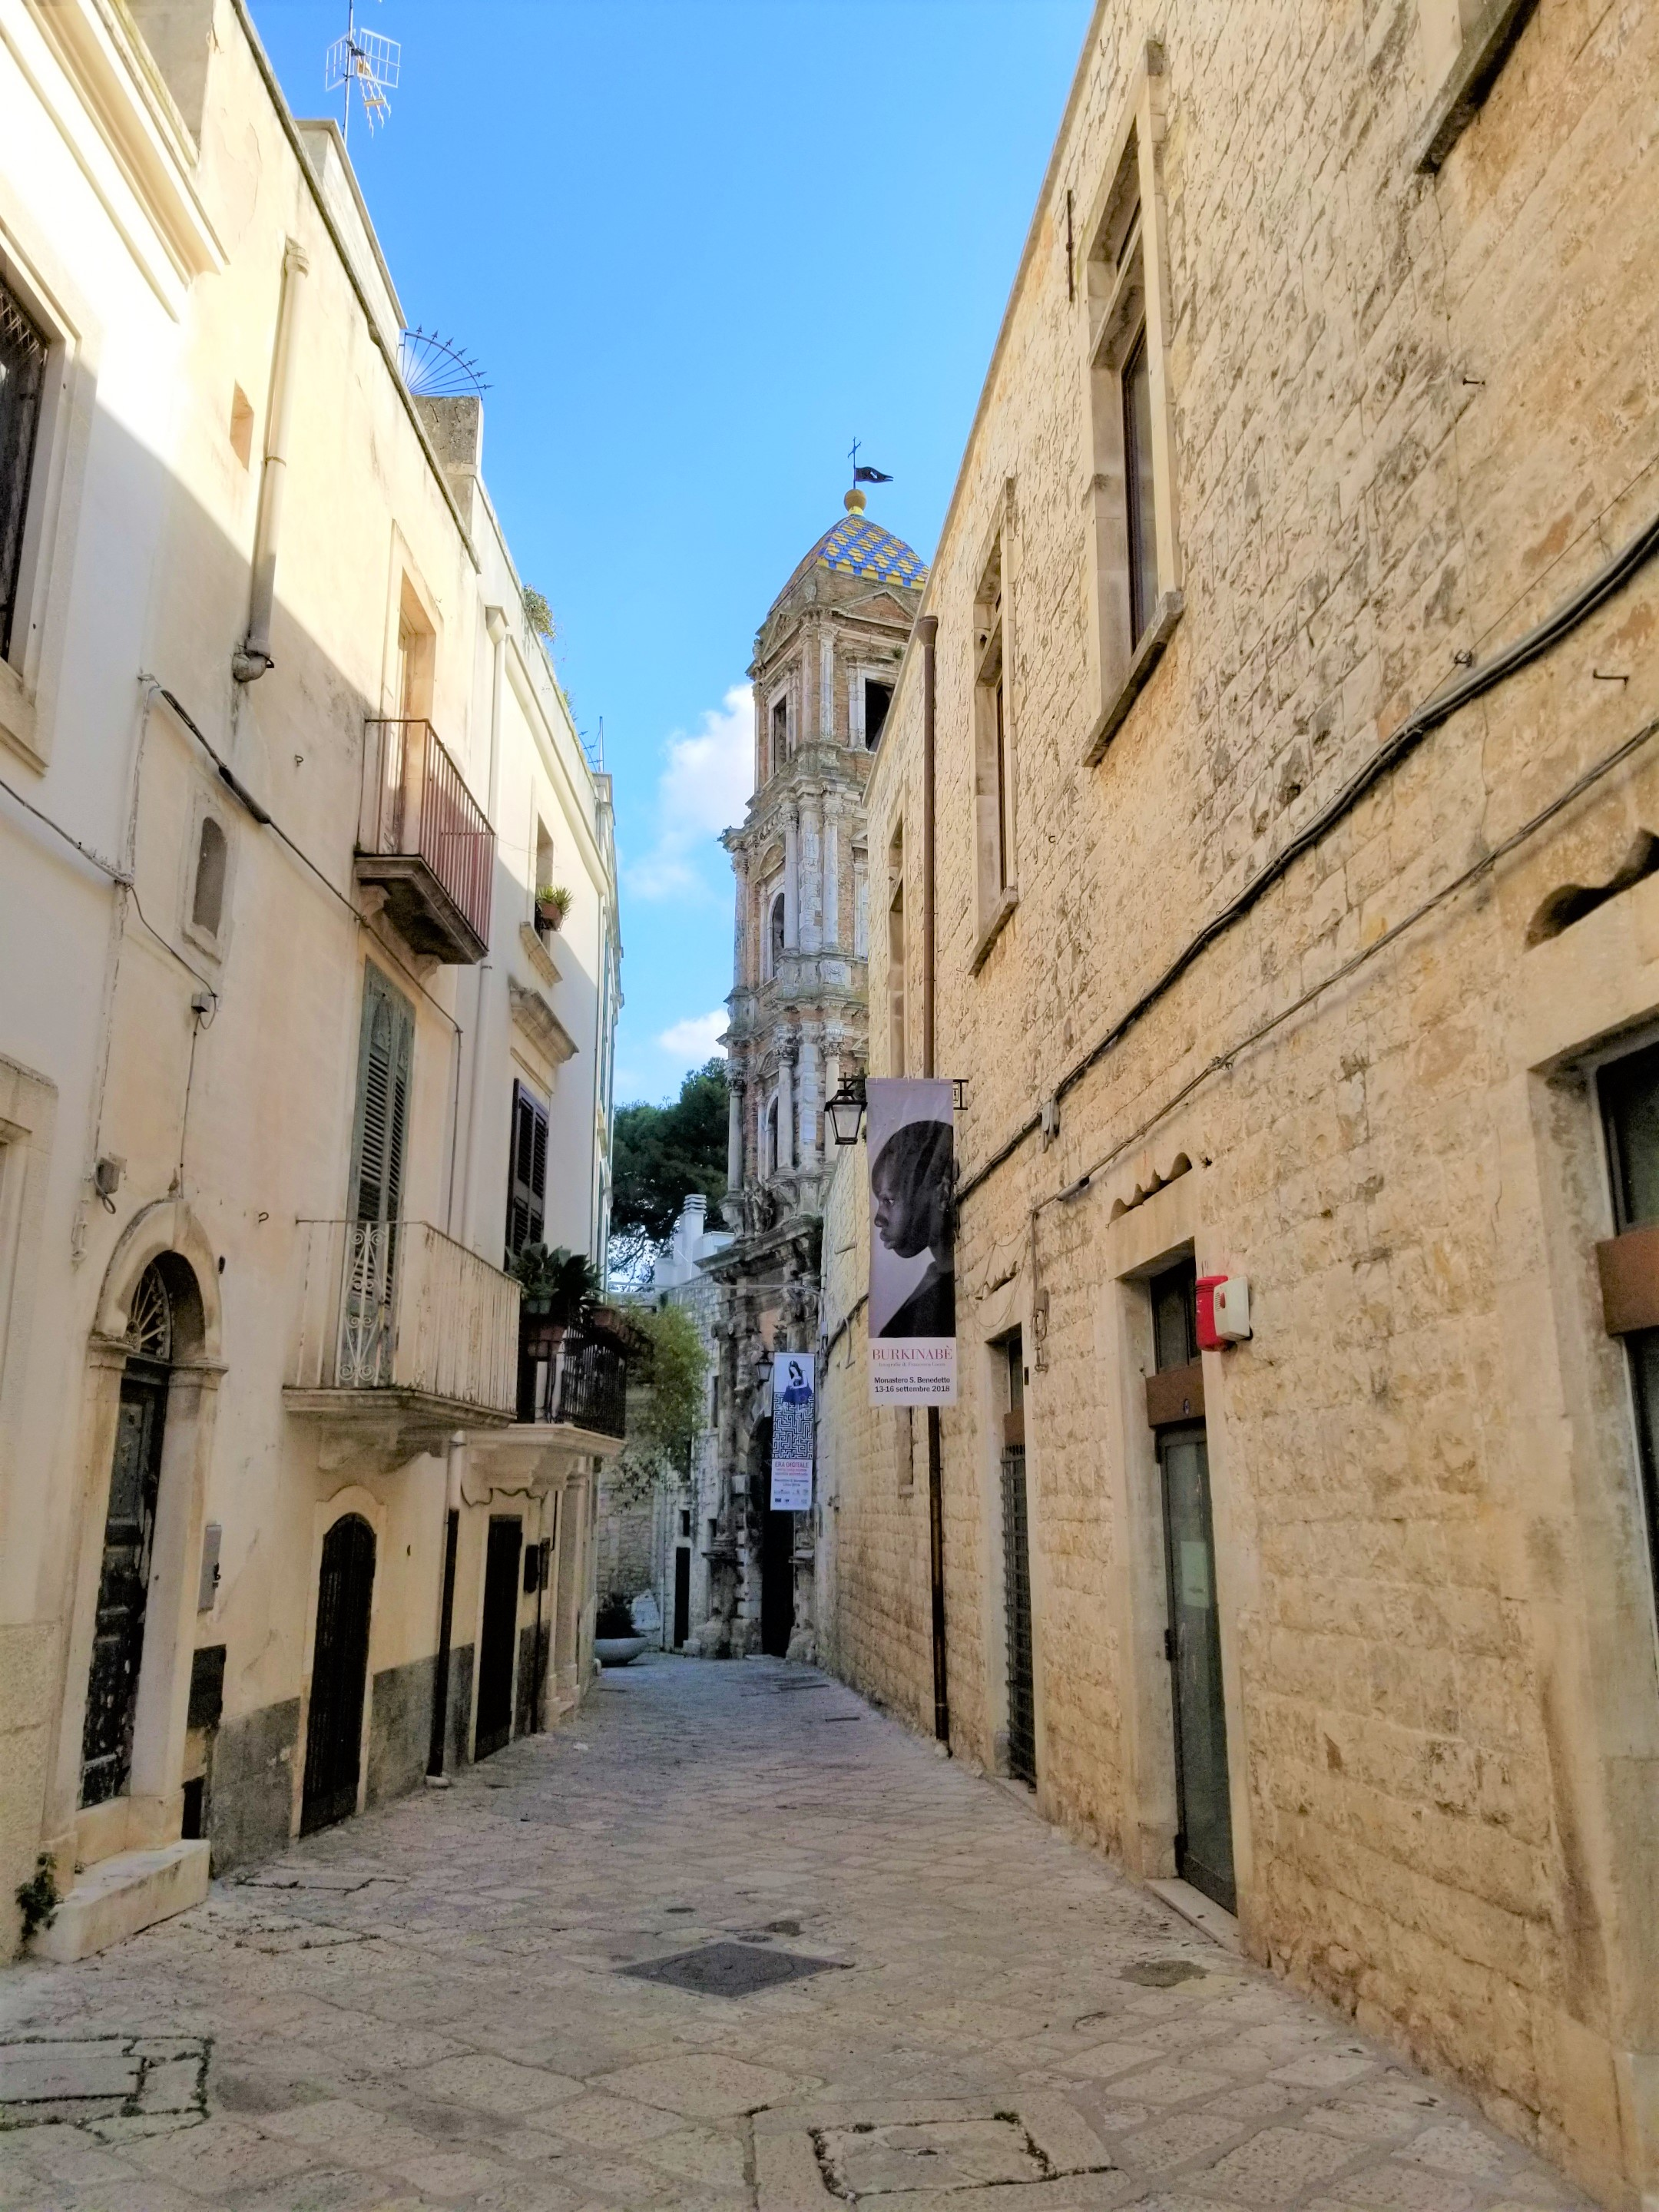 Conversano, Italy in Puglia region is beautiful. Join our journey at ouritalianjourney.com